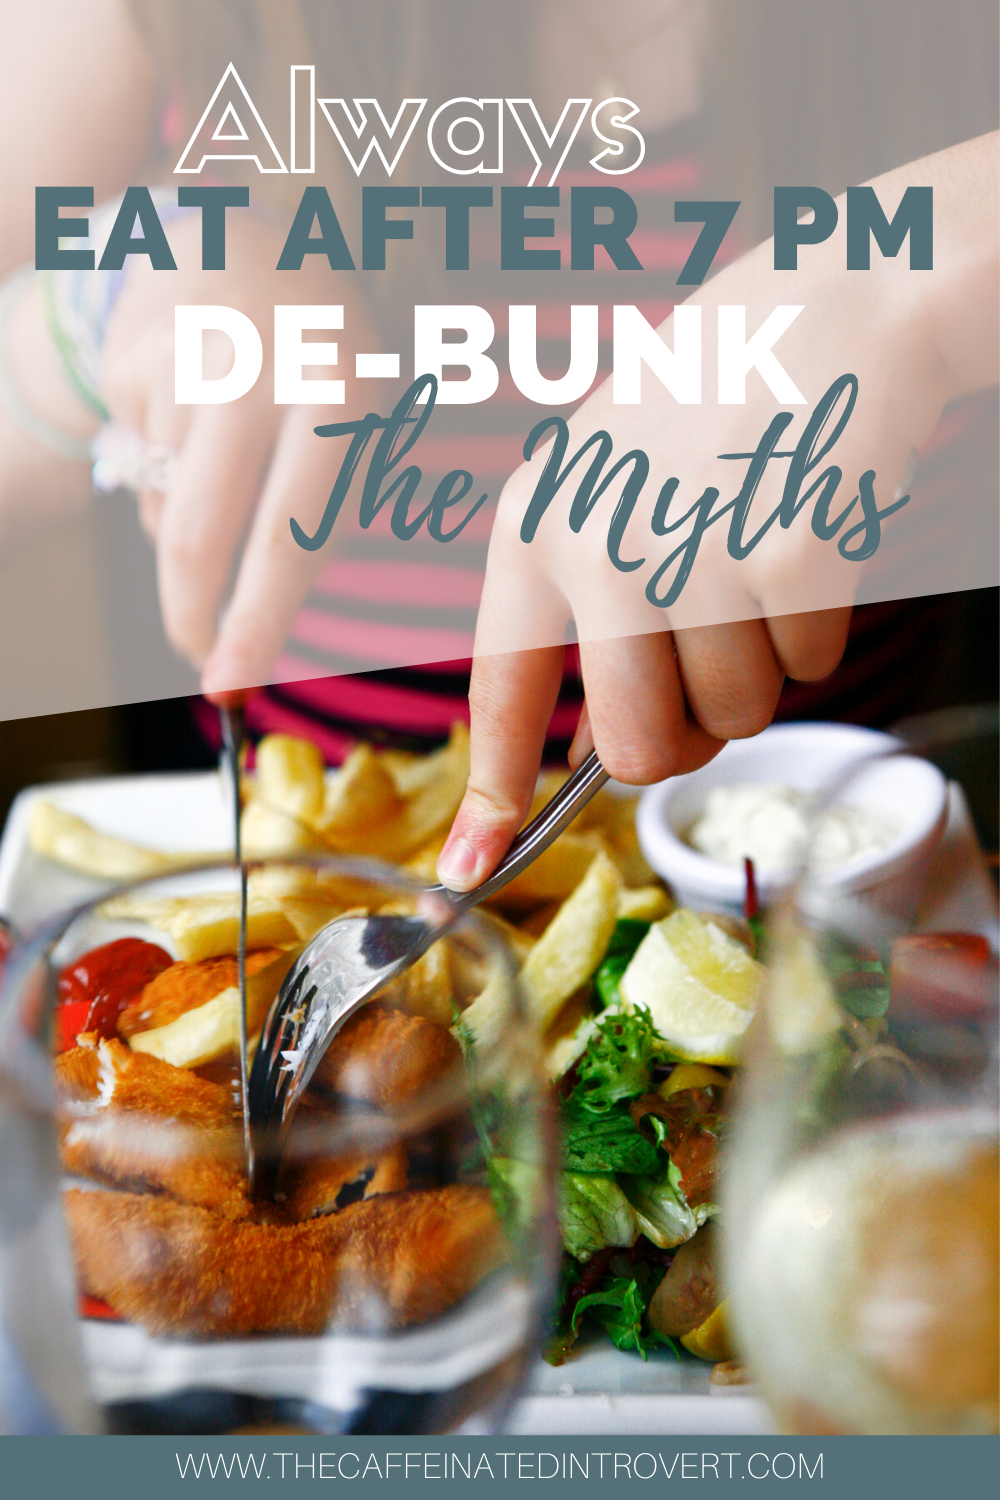 We've been traditionally taught to avoid carbs, have an early dinner, and never eat before bed. But the fact is, the latest scientific research shows us this earlier model is not the most ideal. #debunk #myth #health #alwayseatafter7